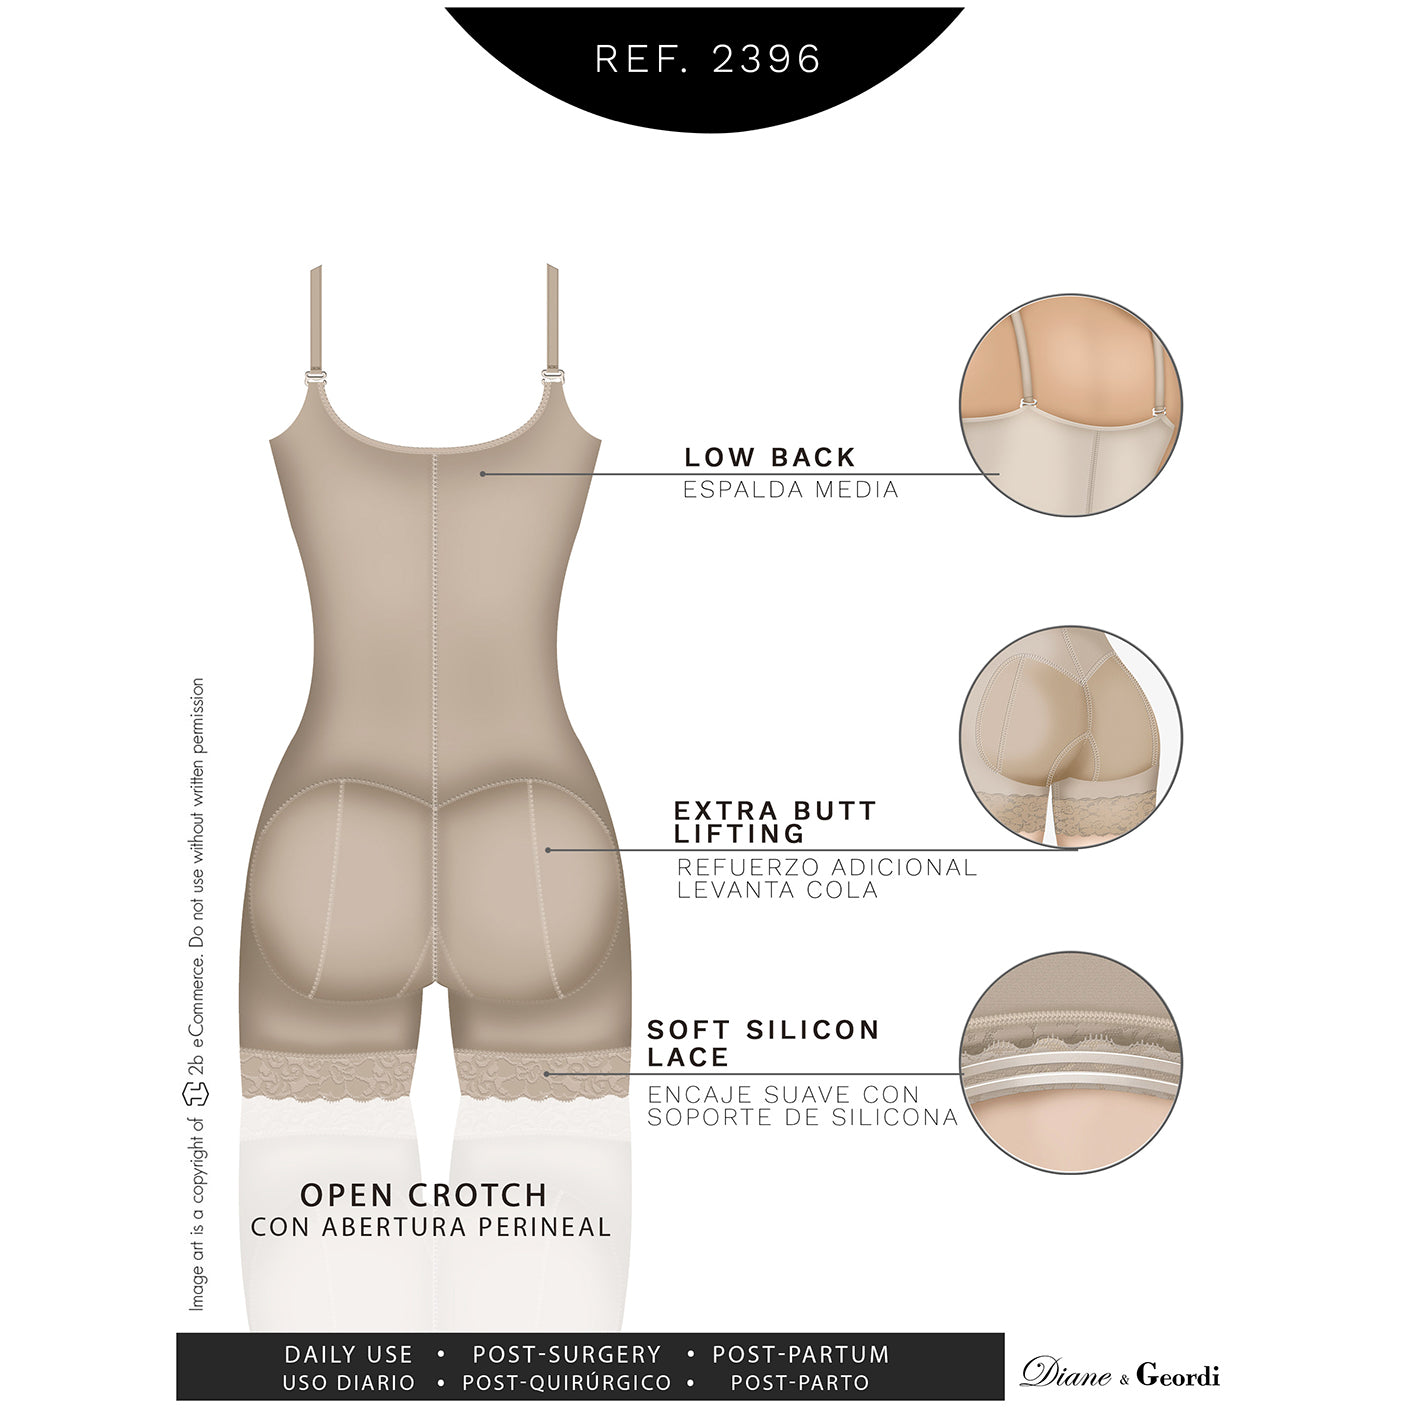 Diane & Geordi: 2396 - Women's Liposuction Bodyshaper - Showmee Store